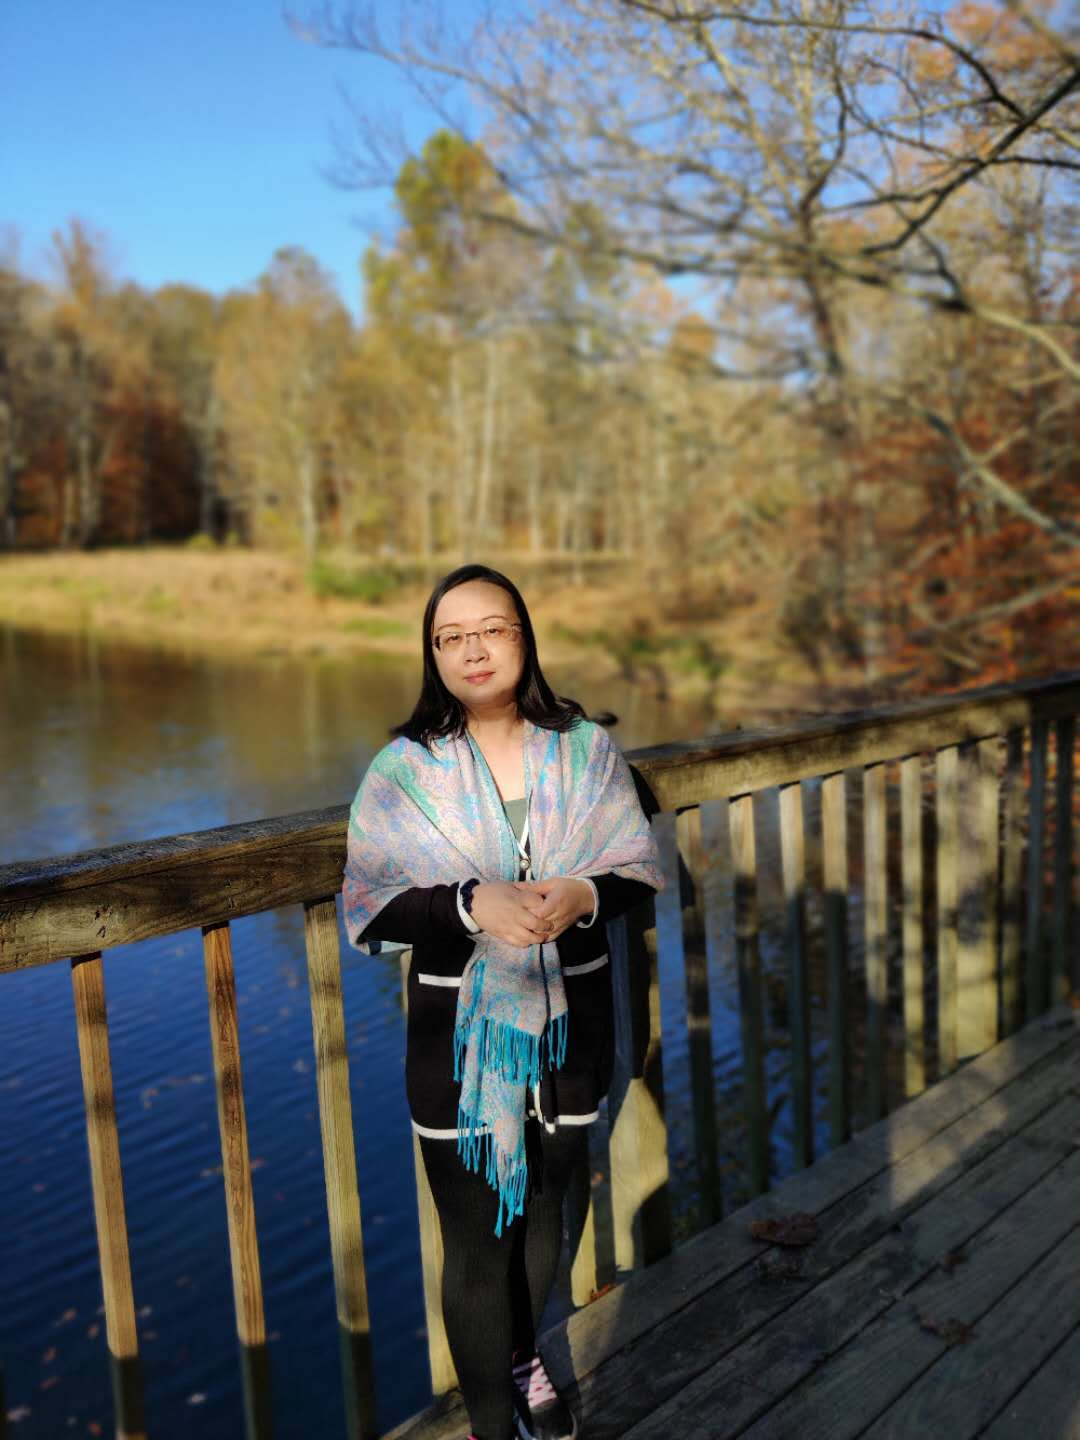 A woman leaning against the rail of a bridge with woods, a lake, and blue sky as the background